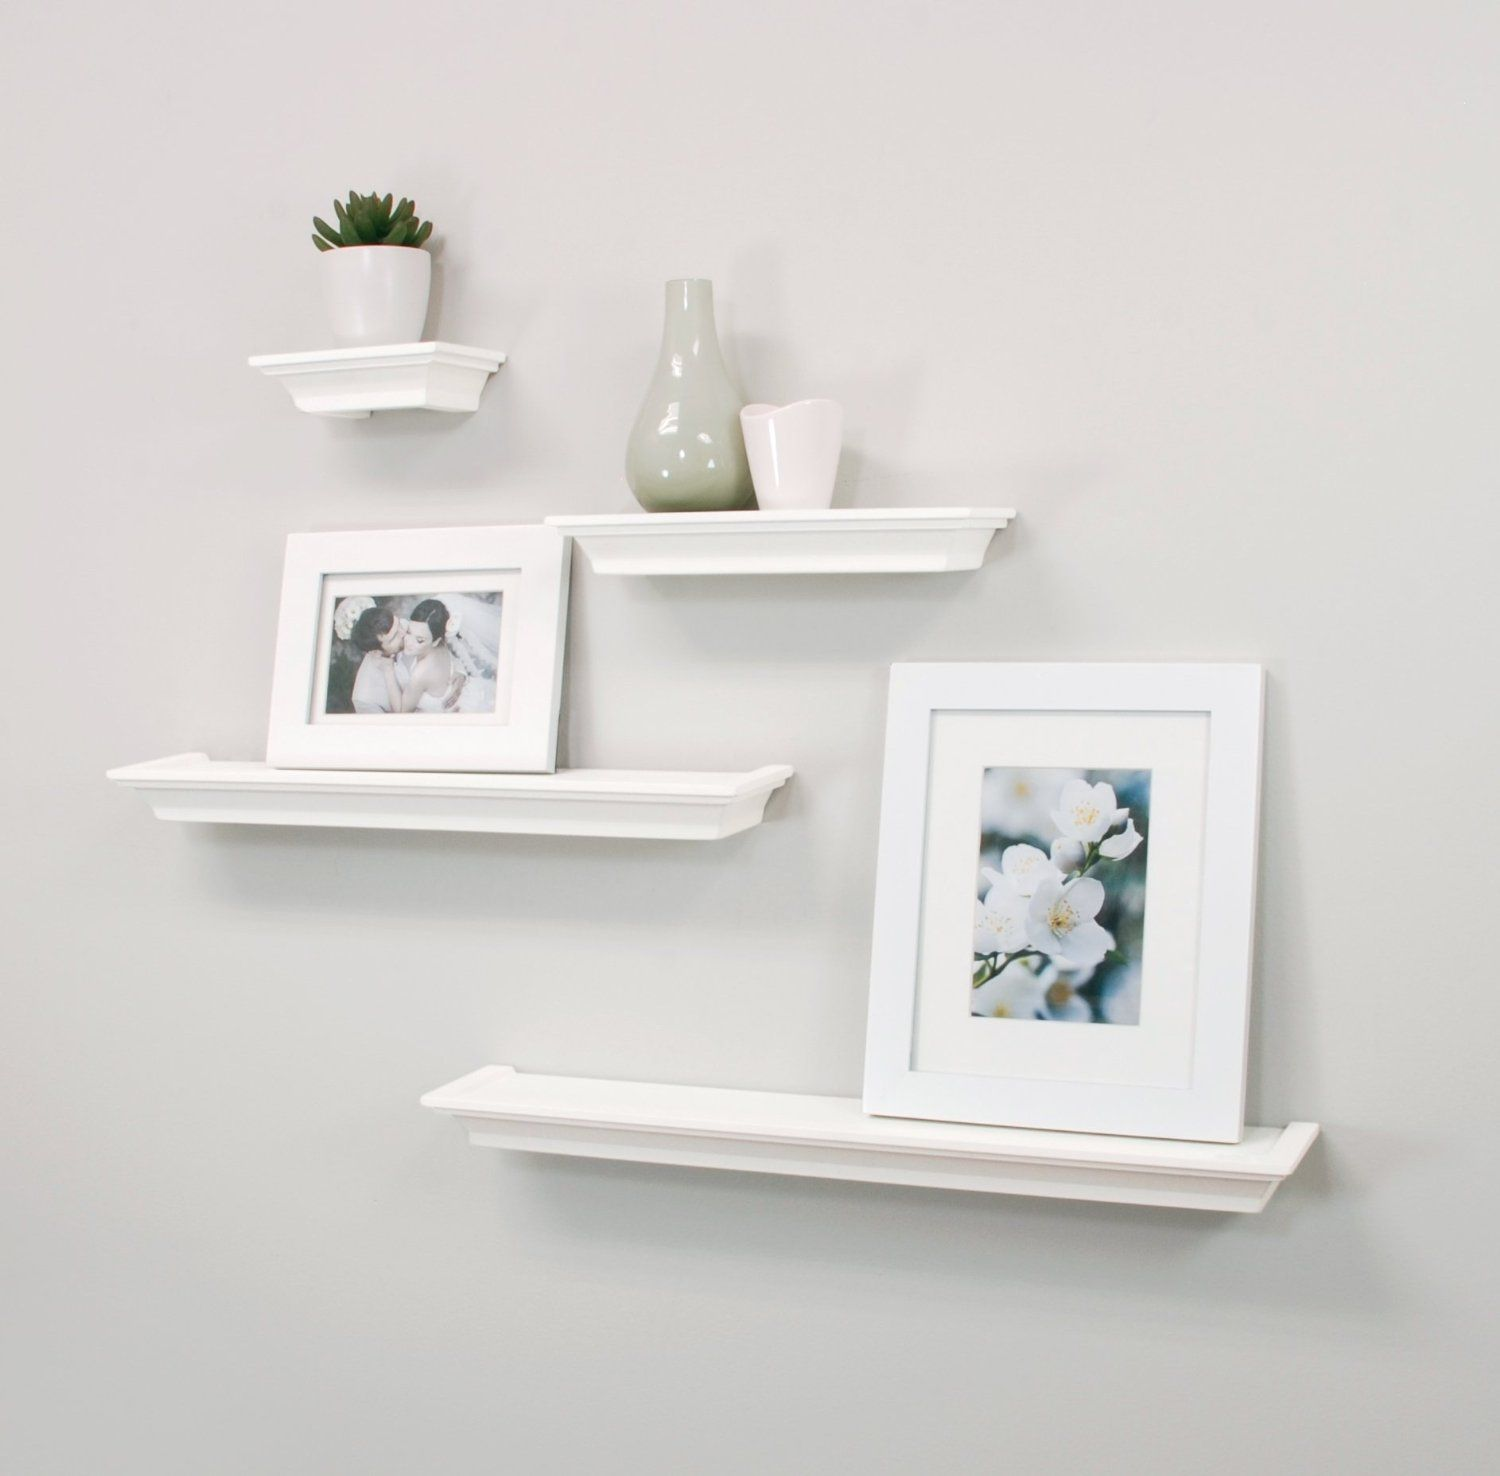 nexxt classic set multilength floating ledge white shelf shelves antique wall small metal supports storage ikea ture rail velcro hanging hooks funky corner dressing gown kmart